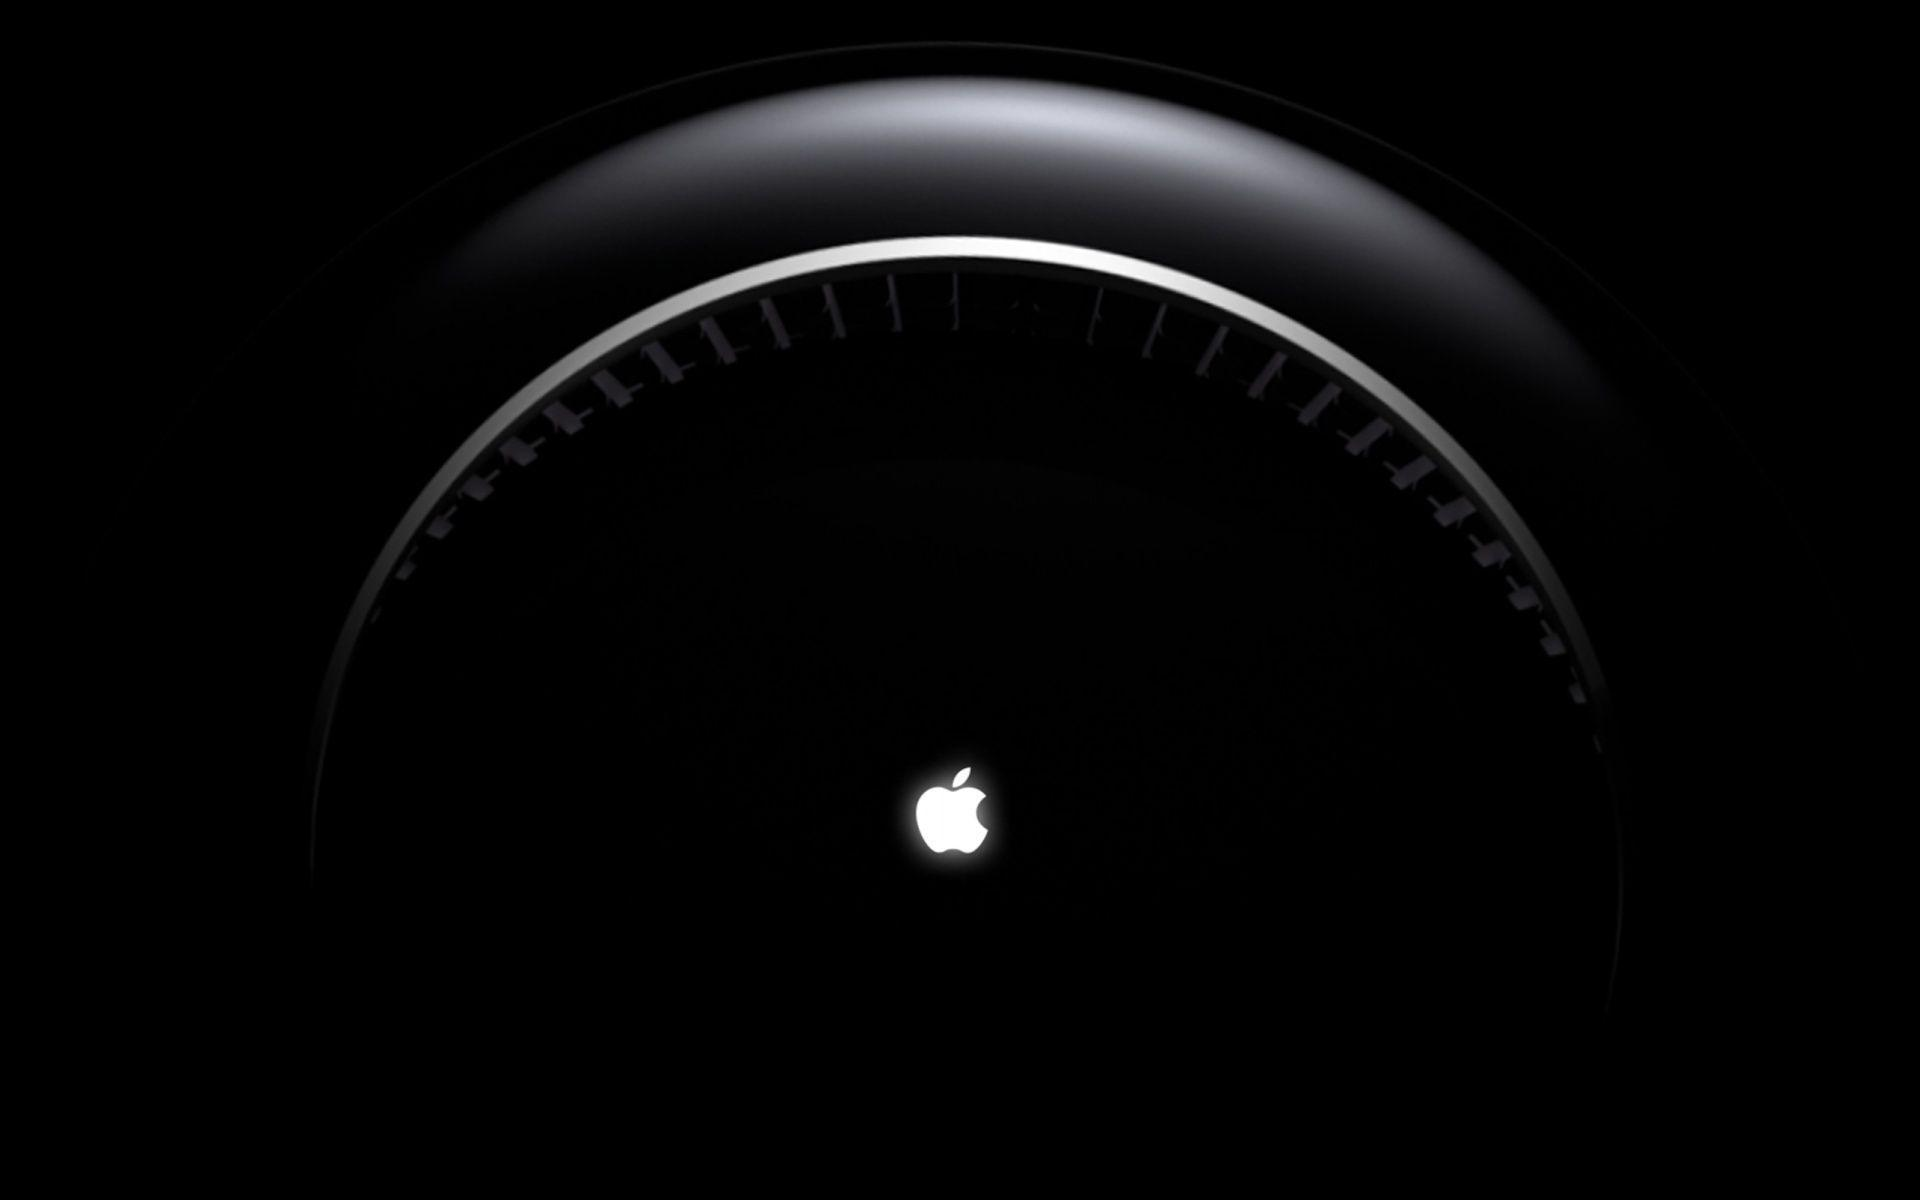 Mac Black Wallpapers - Wallpaper Cave